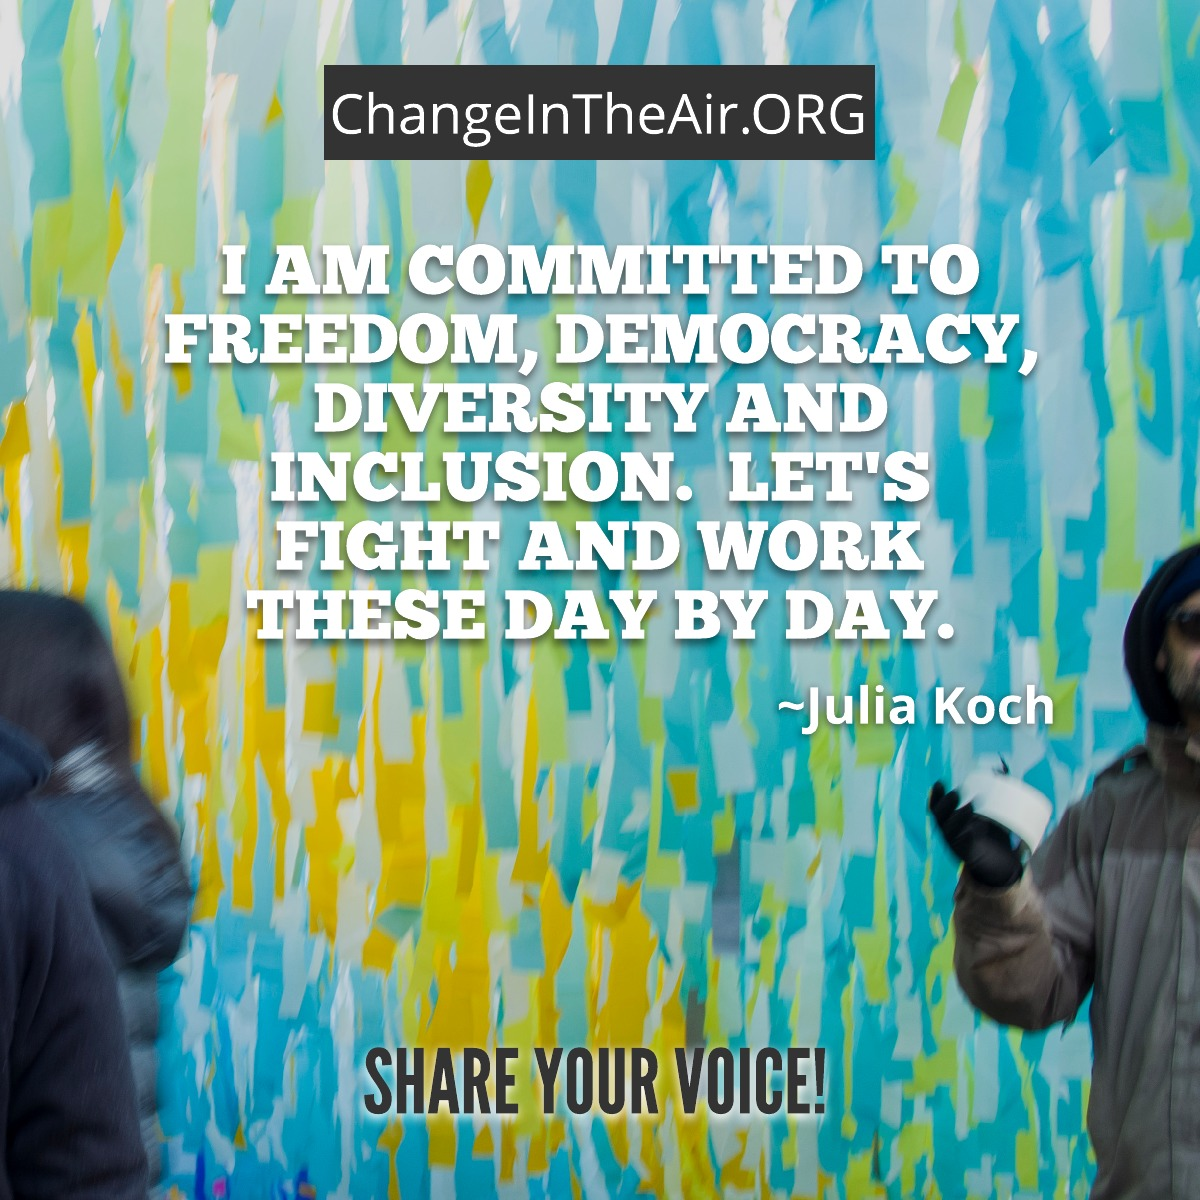 Change in the Air message. I am committed to freedom, democracy, diversity and inclusion. Let's fight and work these day by day.